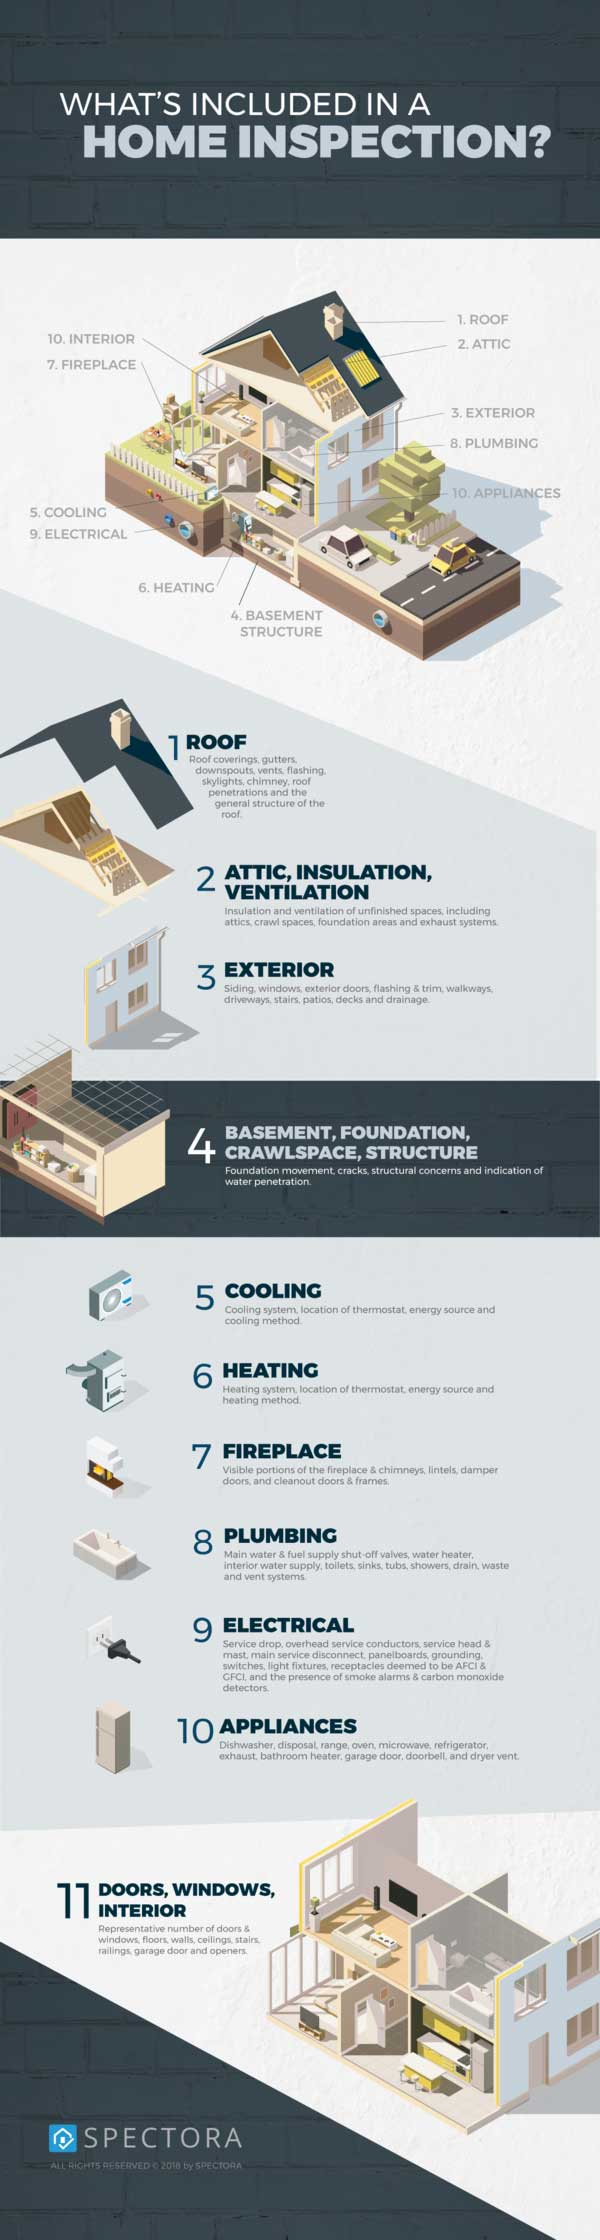 What is included in your home inspection graphic